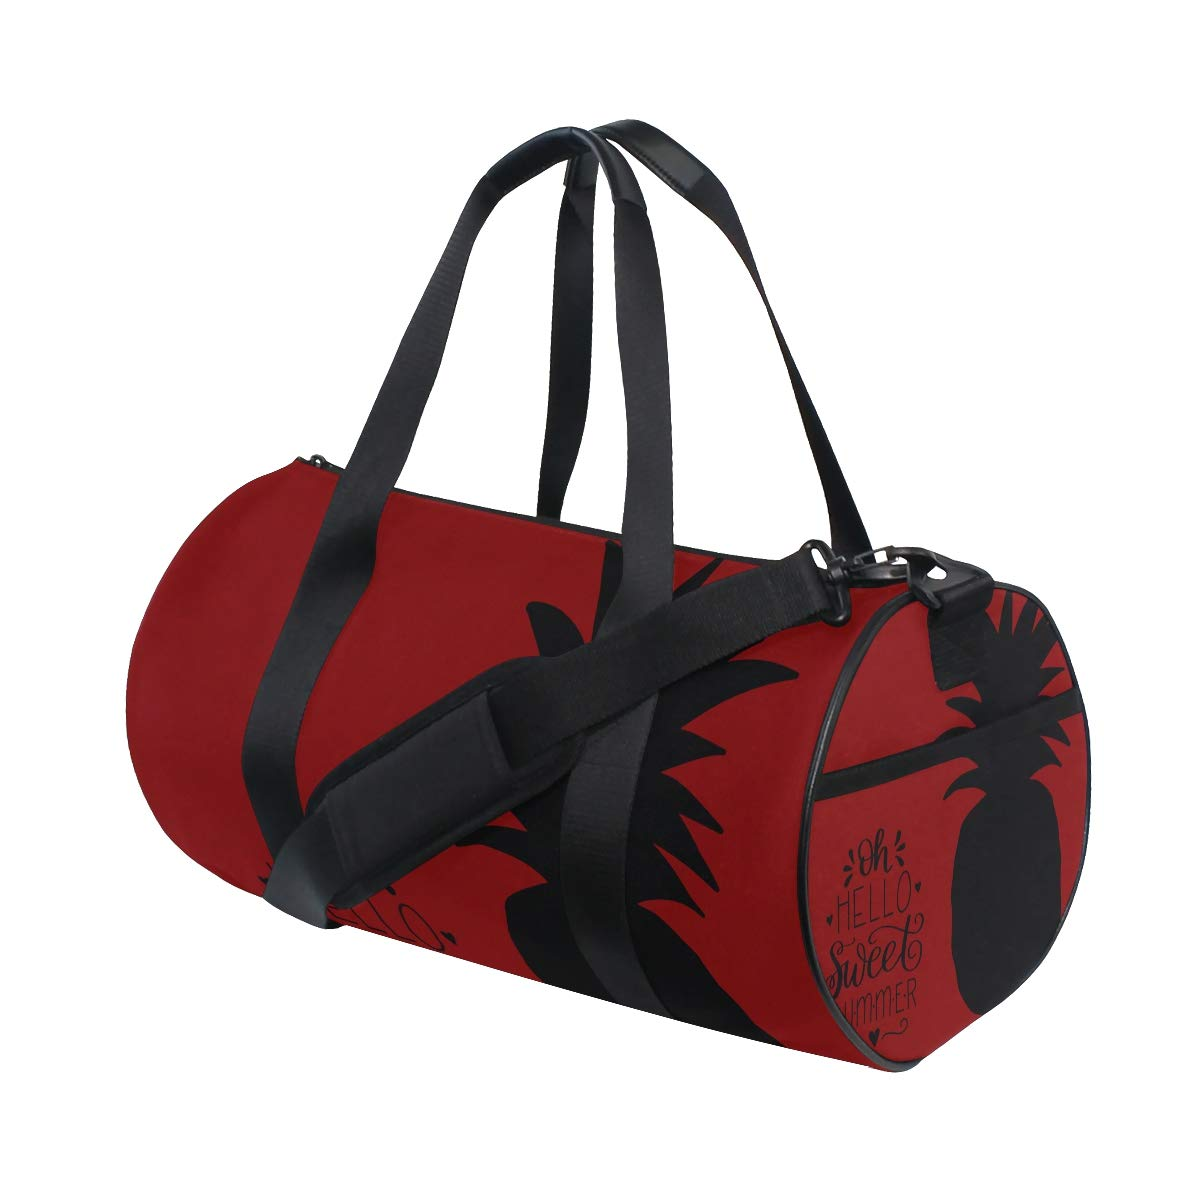 Large Duffel Bag Sports Bag Gym Bag for Women and Men - Summer Pineapple